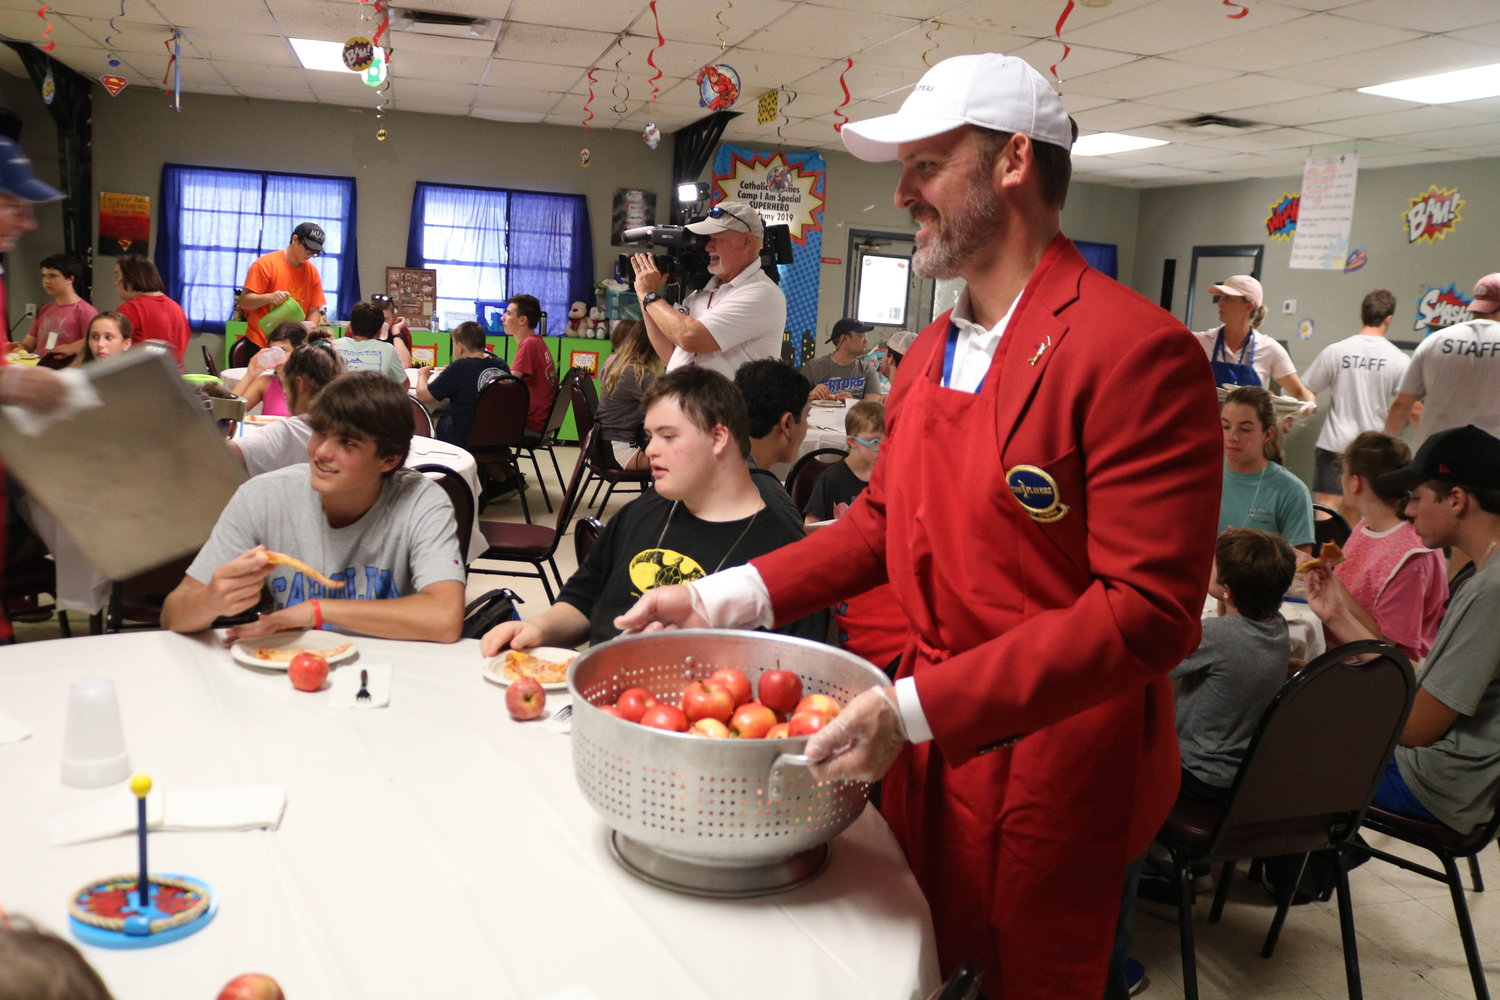 Newly selected Red Coat, 2019 chairman, Adam Campbell, offers campers apples for a healthy side.